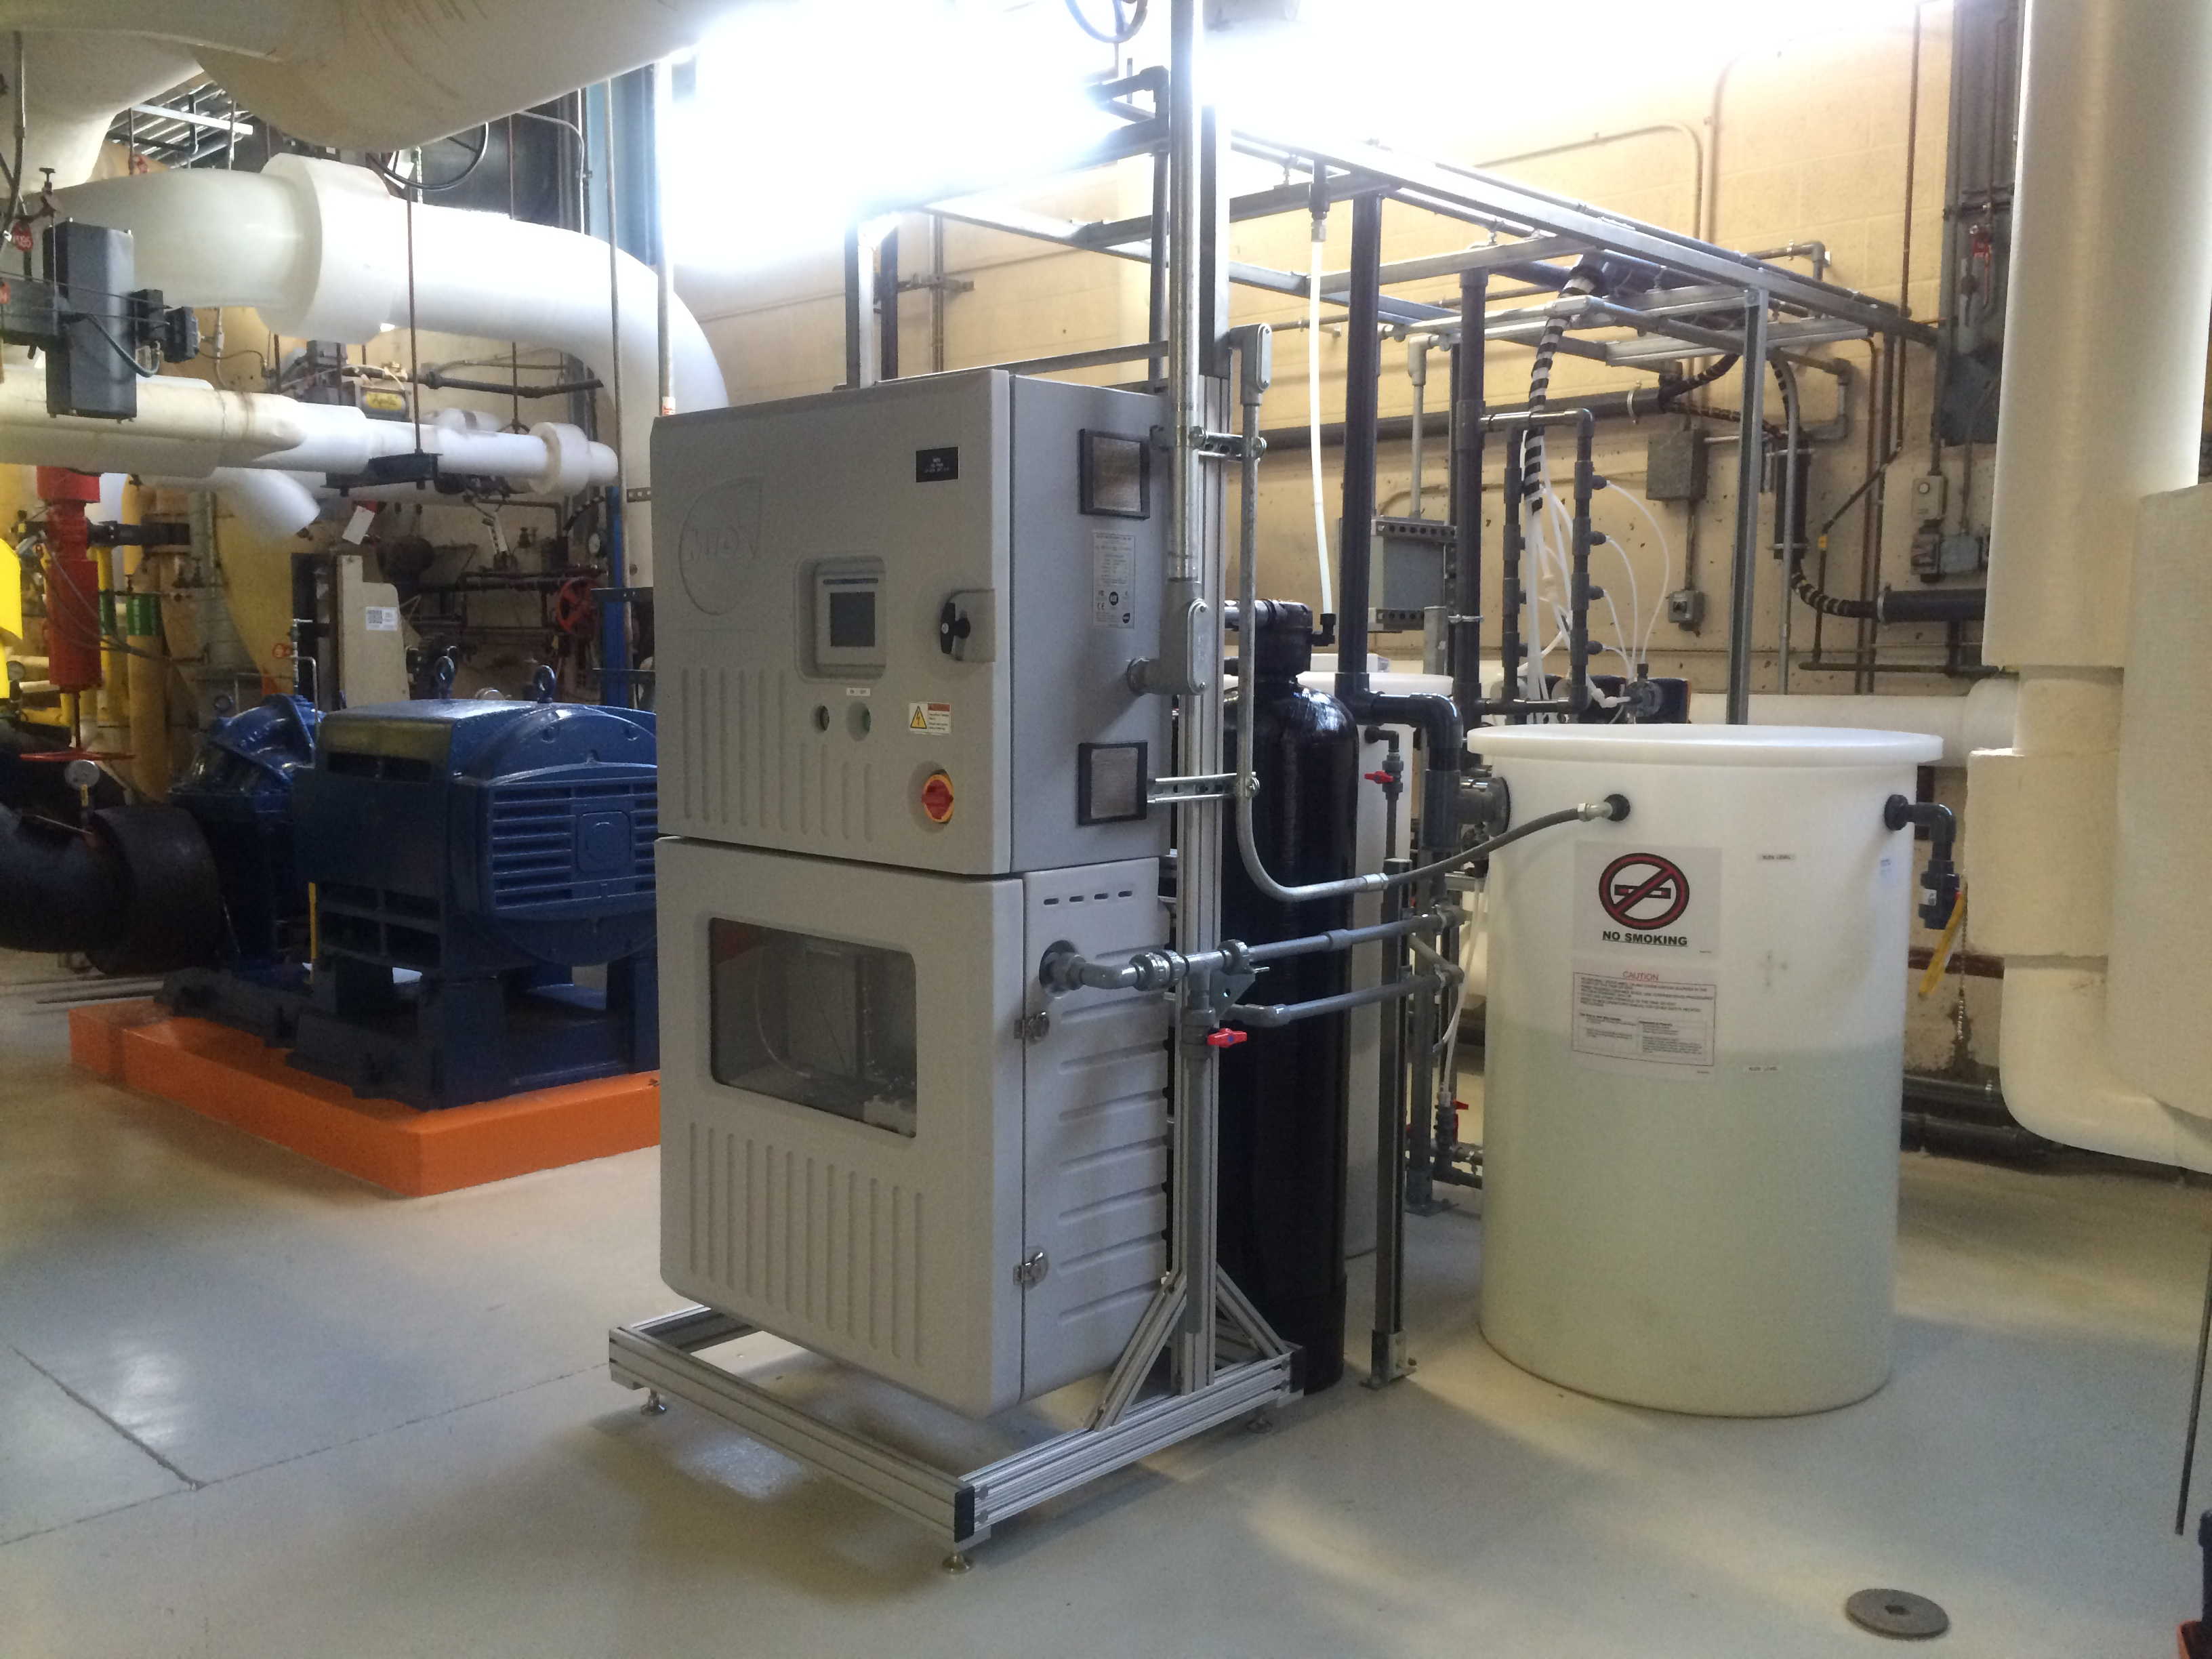 MIOX cooling tower water treatment using electrochemical generation